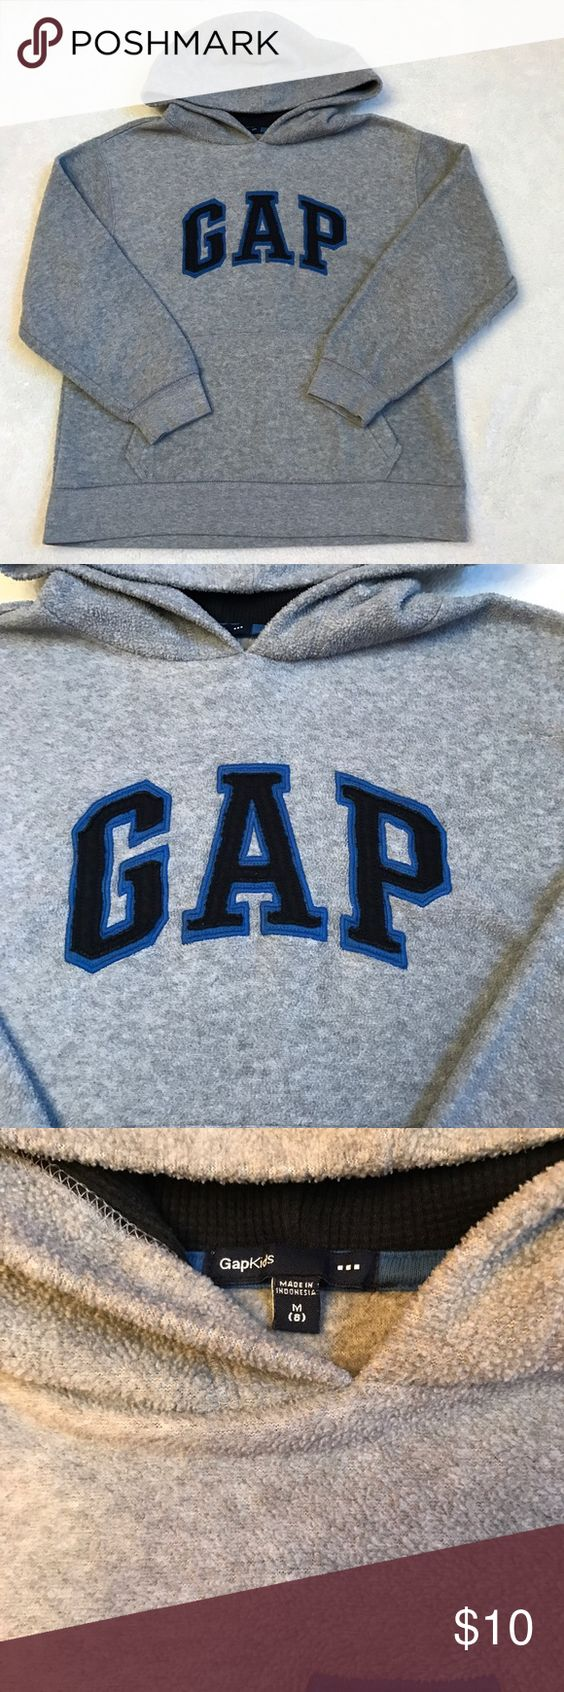 Boys fleece gap hoodie Excellent condition GAP Shirts & Tops Sweatshirts & Hoodies